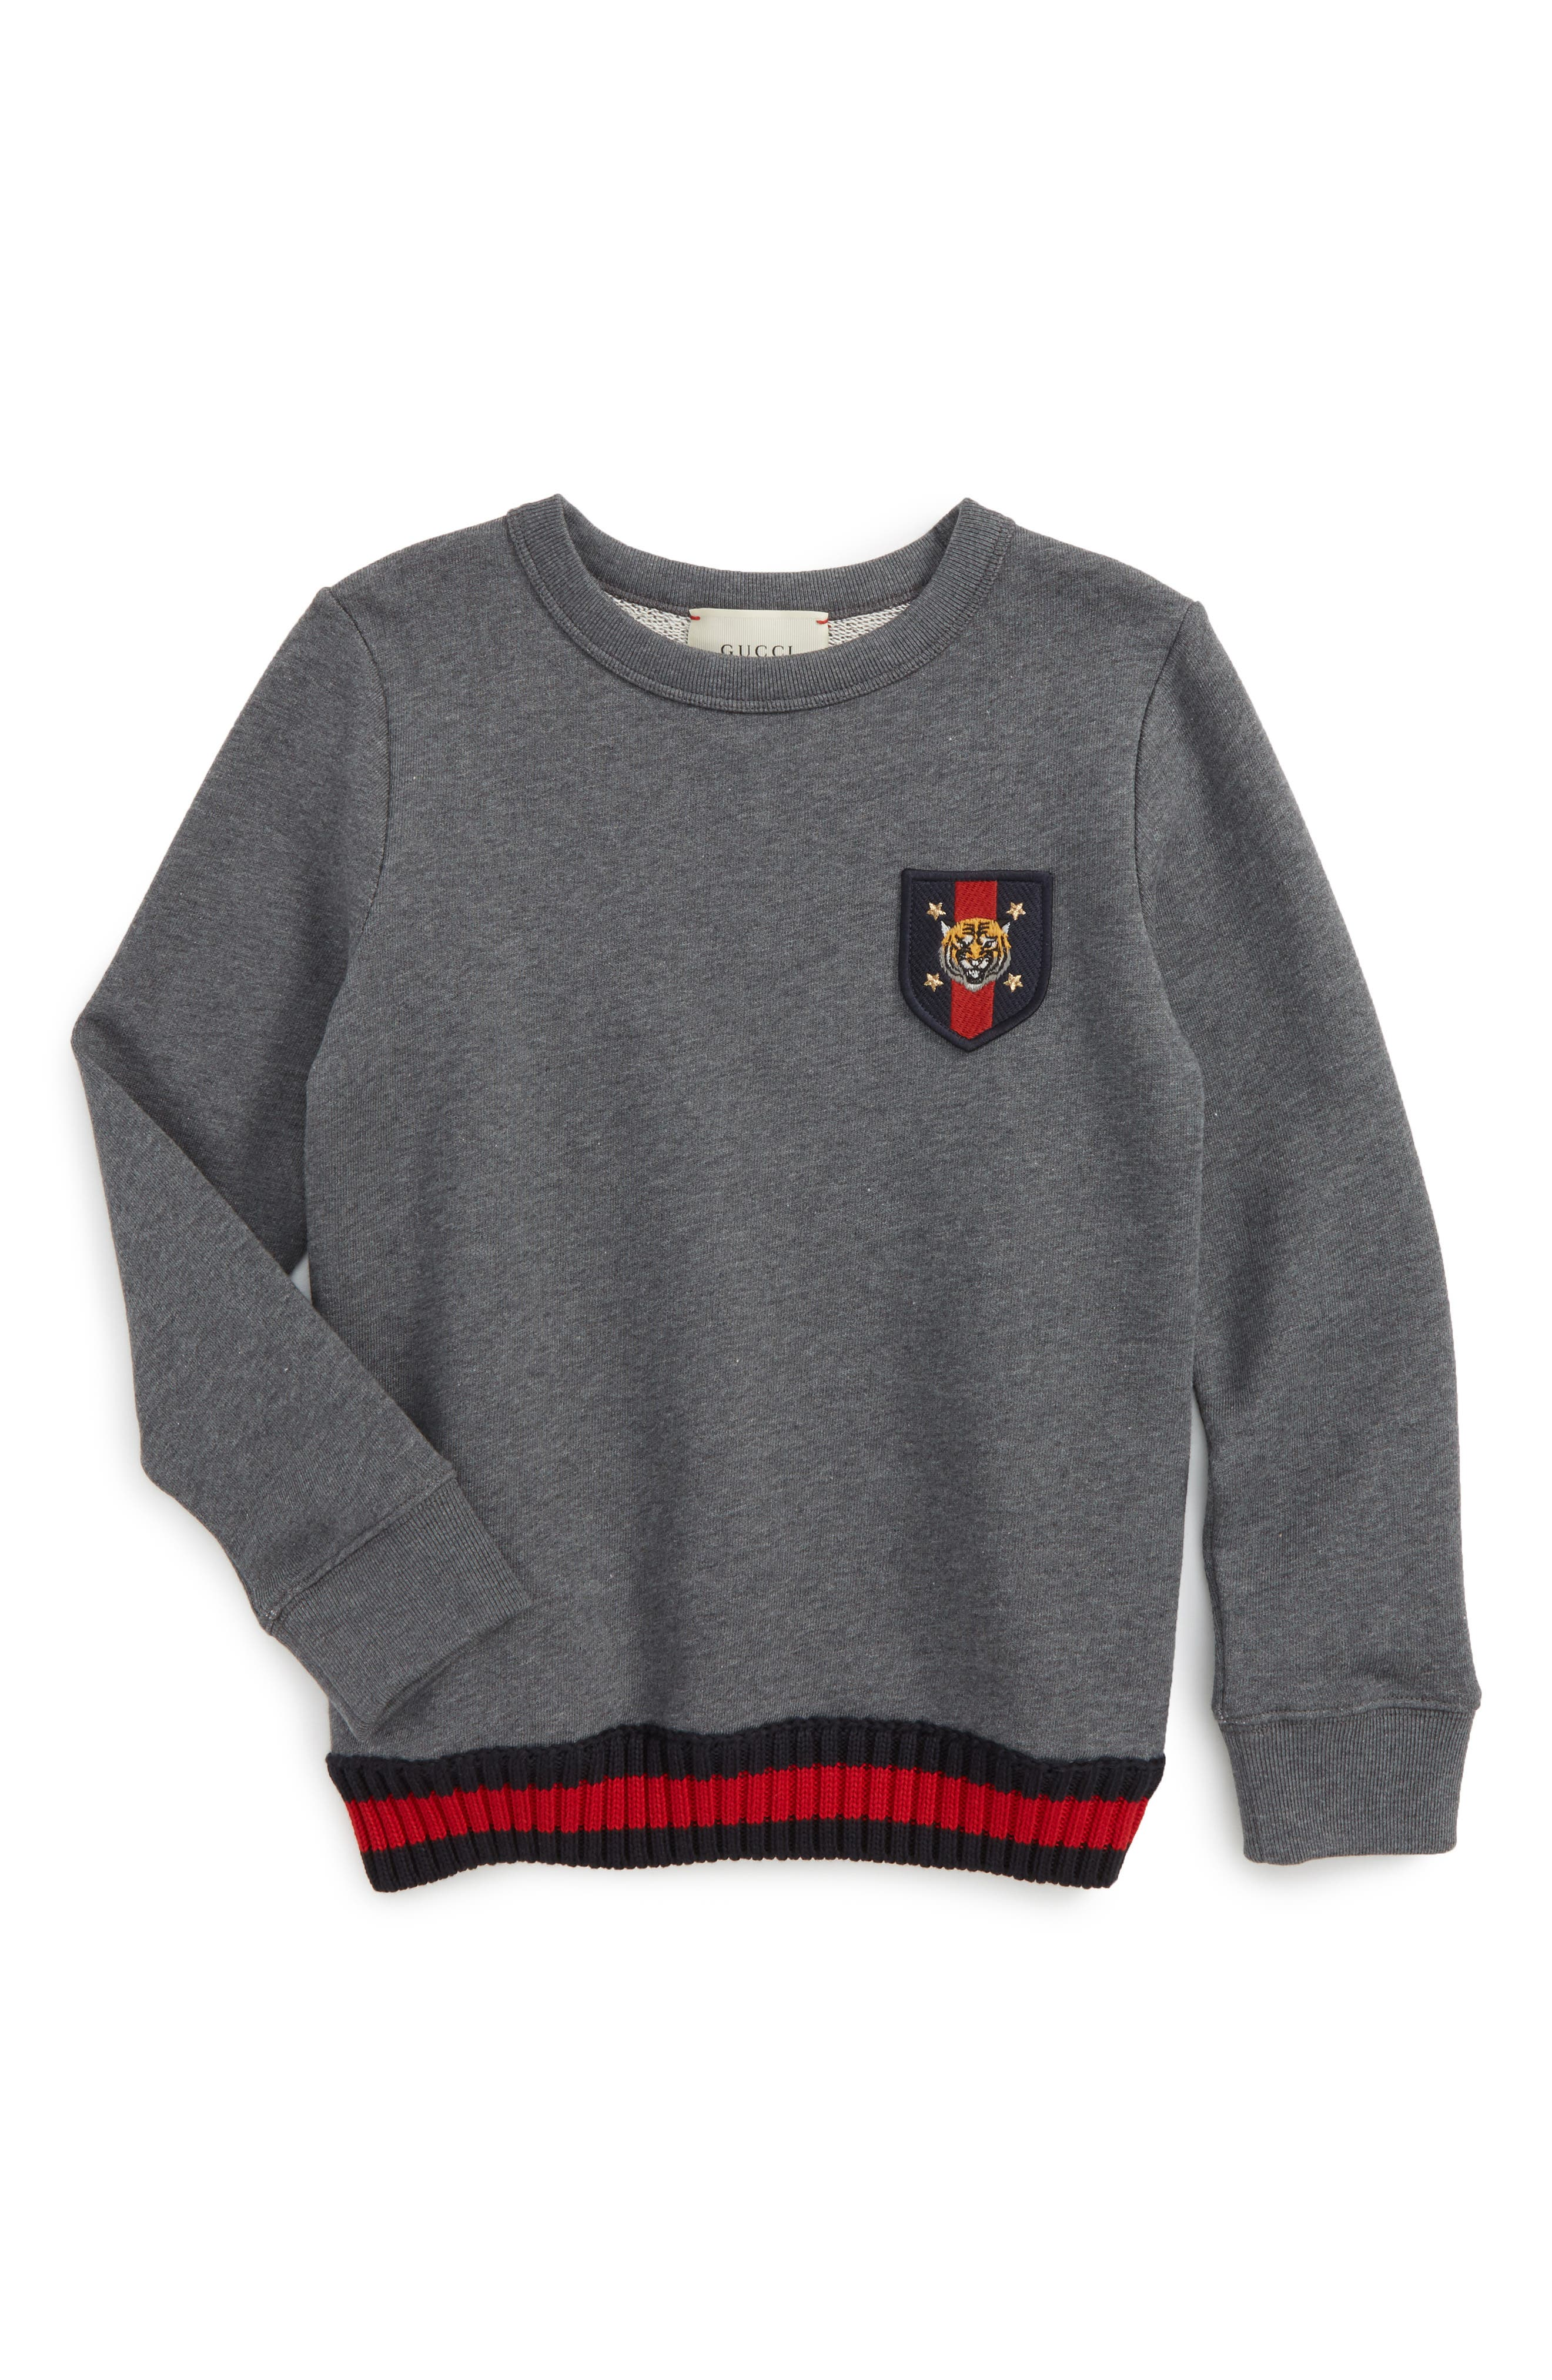 Alternate Image 1 Selected - Gucci Patch Sweatshirt (Little Boys & Big Boys)